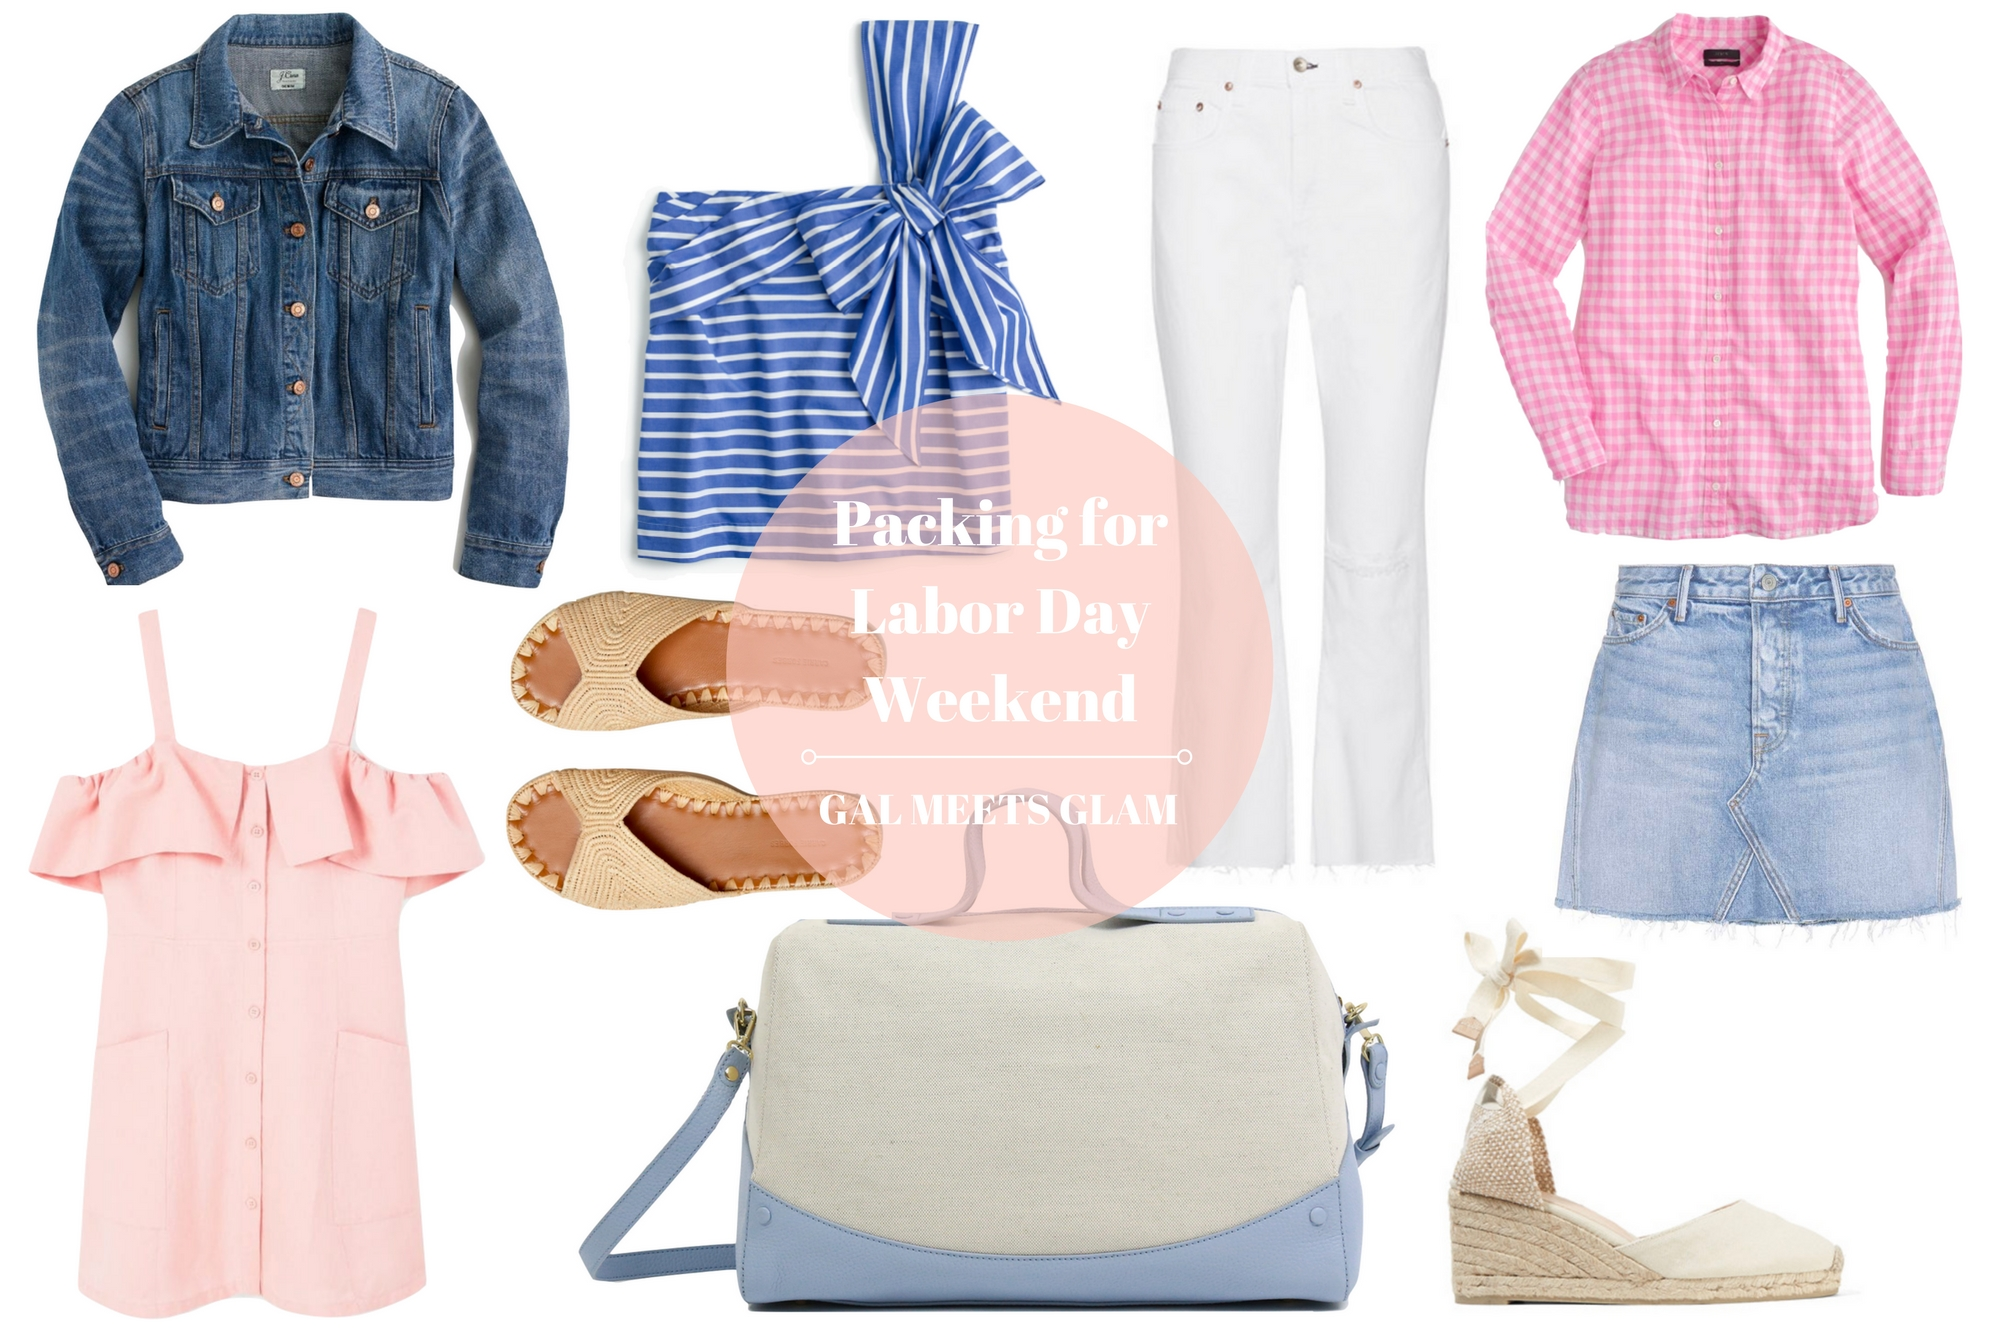 f78f2c5aea7 3 Key Pieces To Pack For Labor Day Weekend - Gal Meets Glam